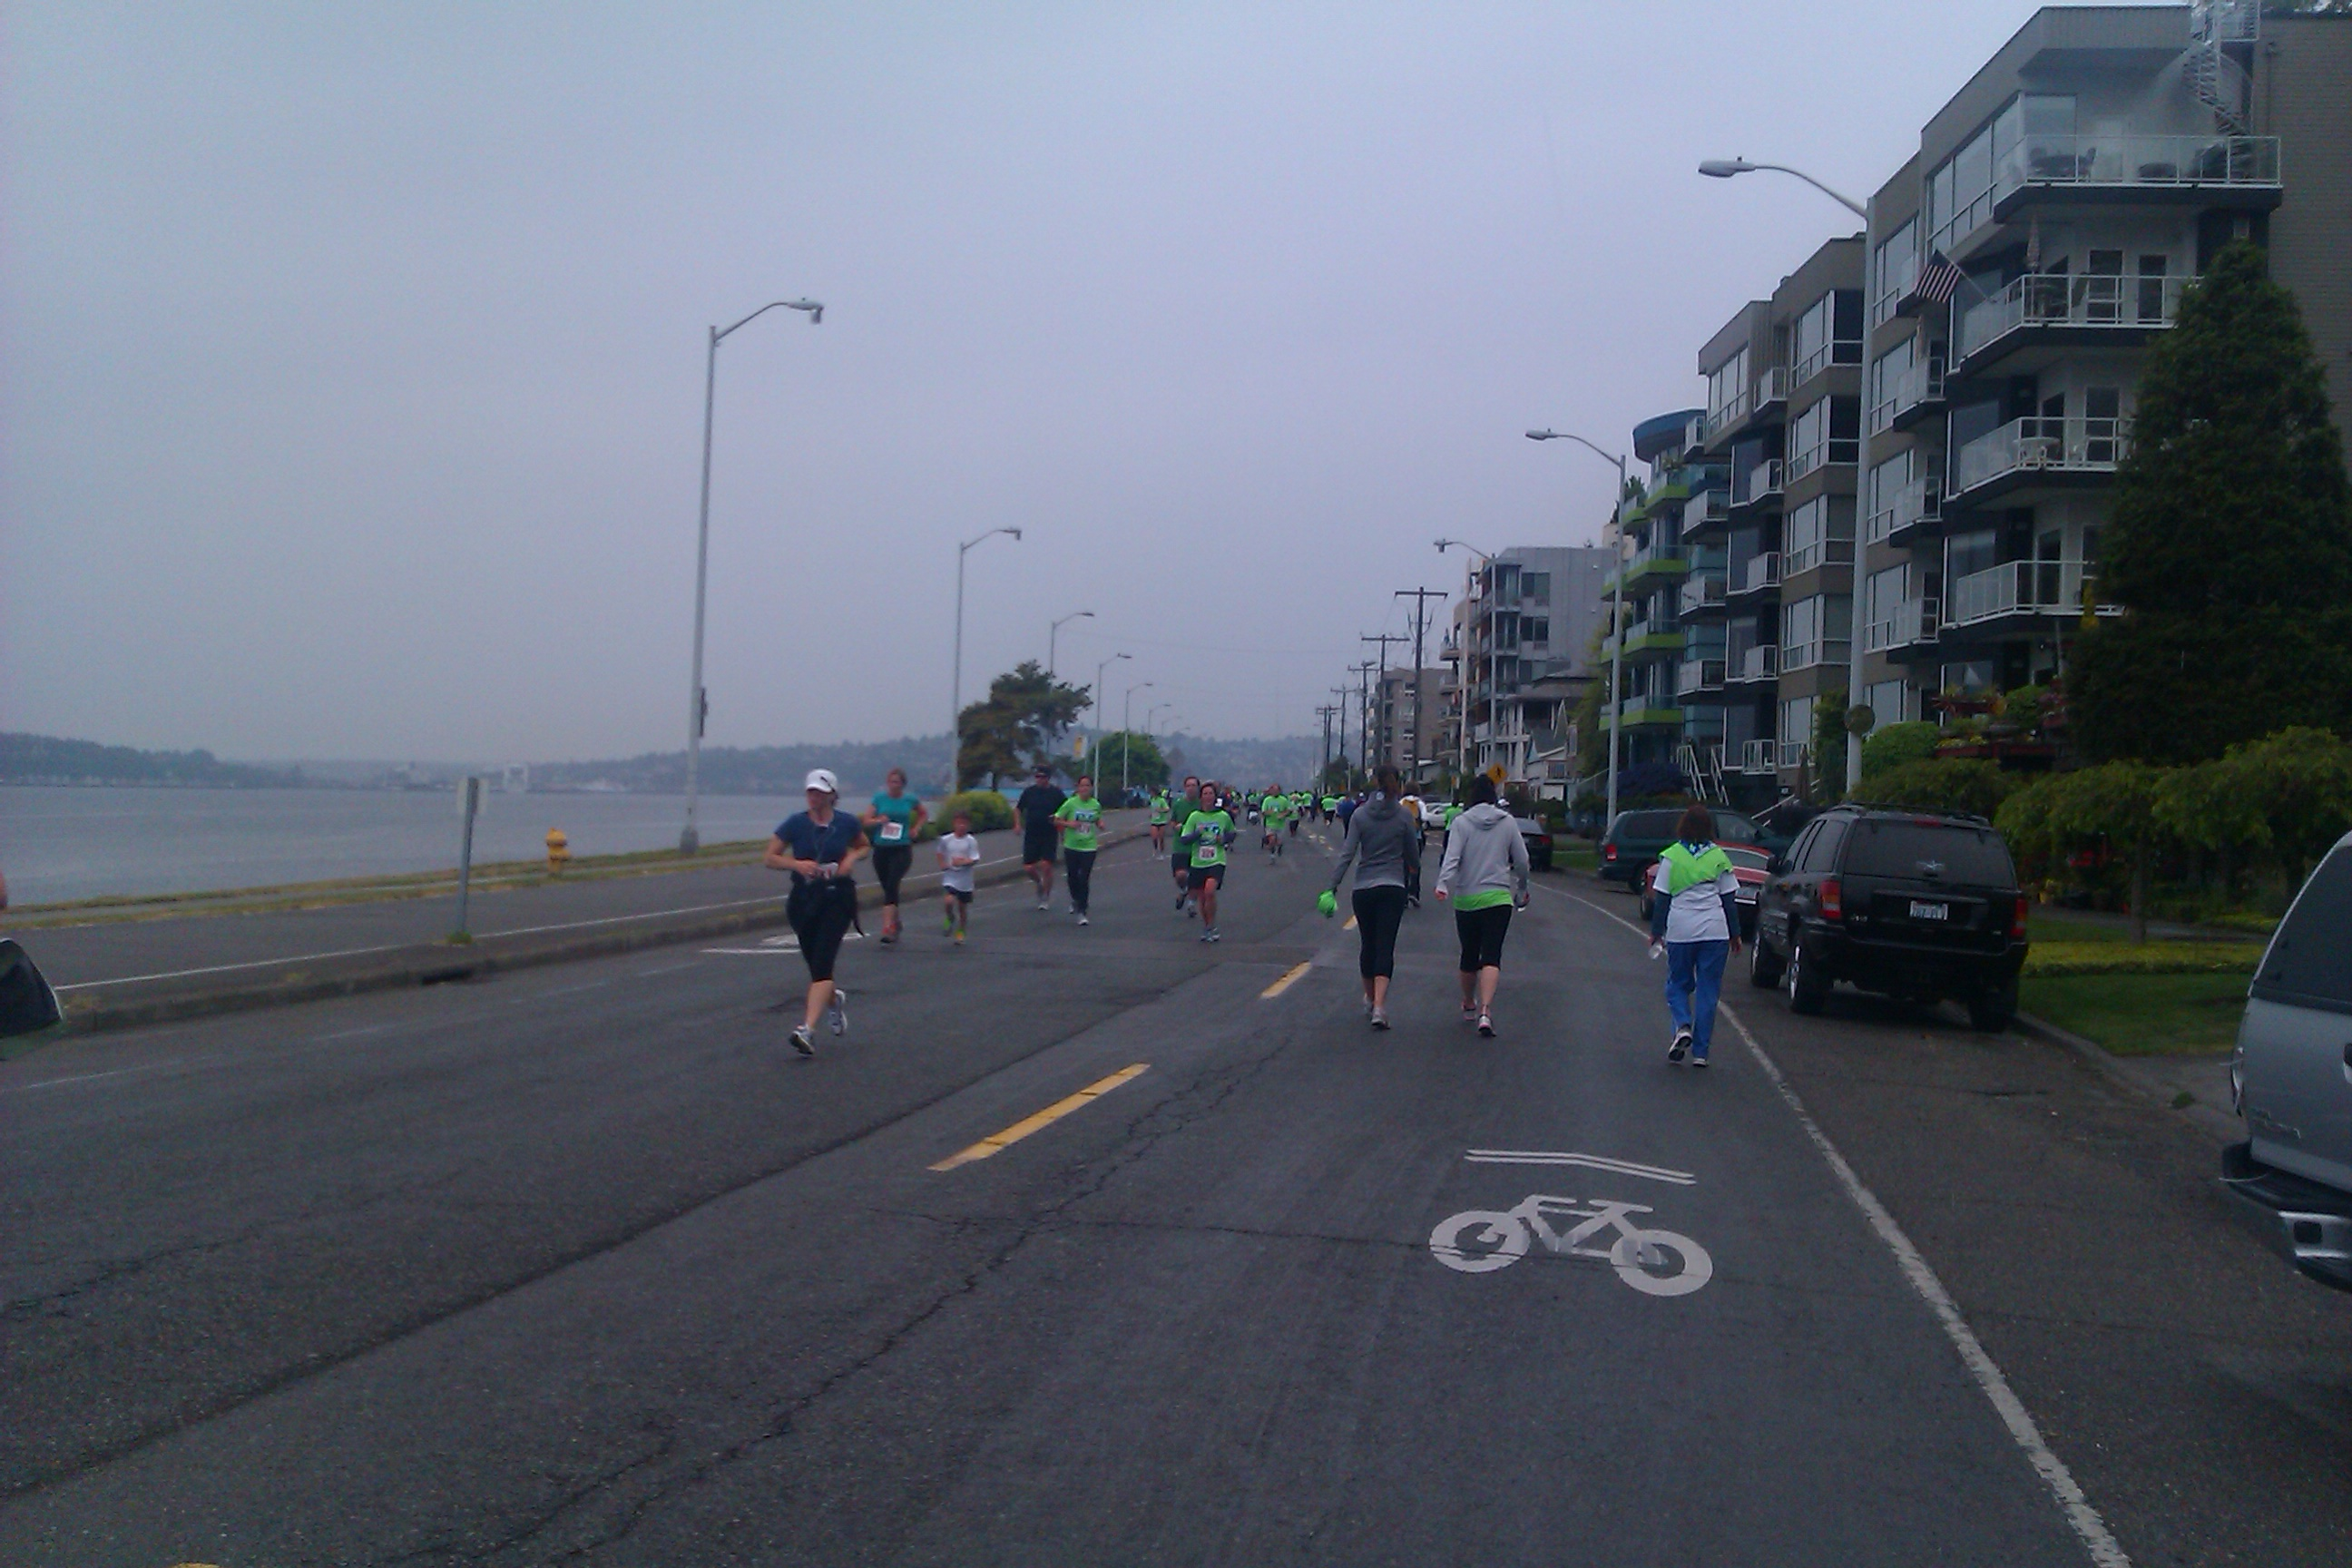 running the West Seattle 5k race